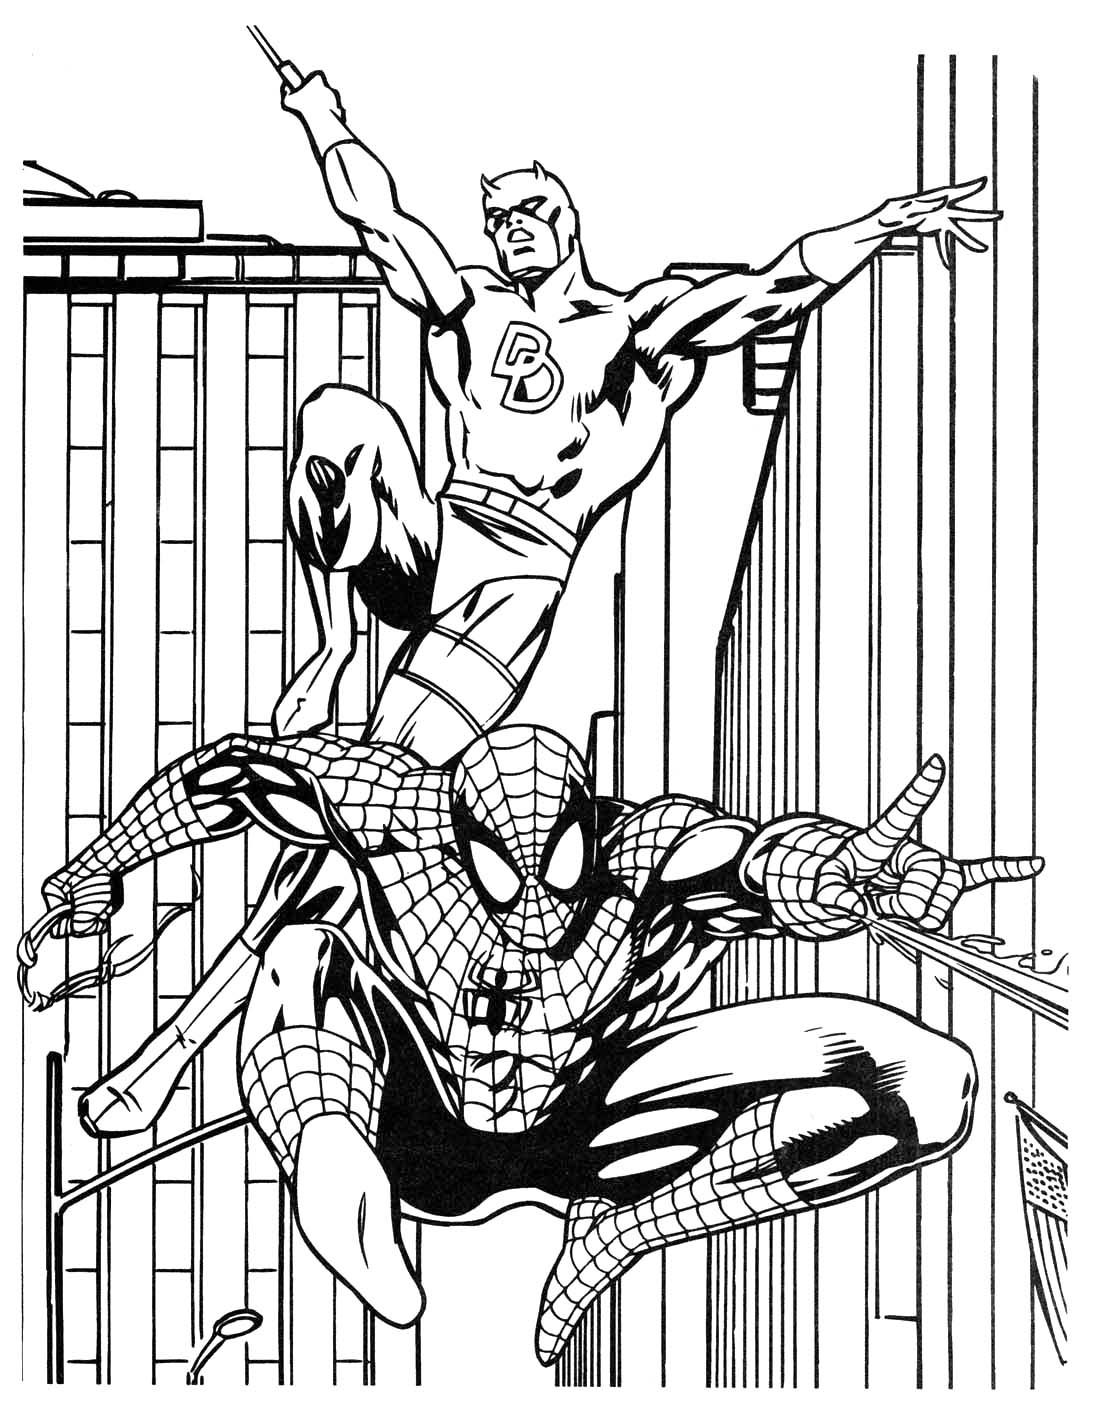 Coloring book - Marvel Super heroes | blank coloring pages ...